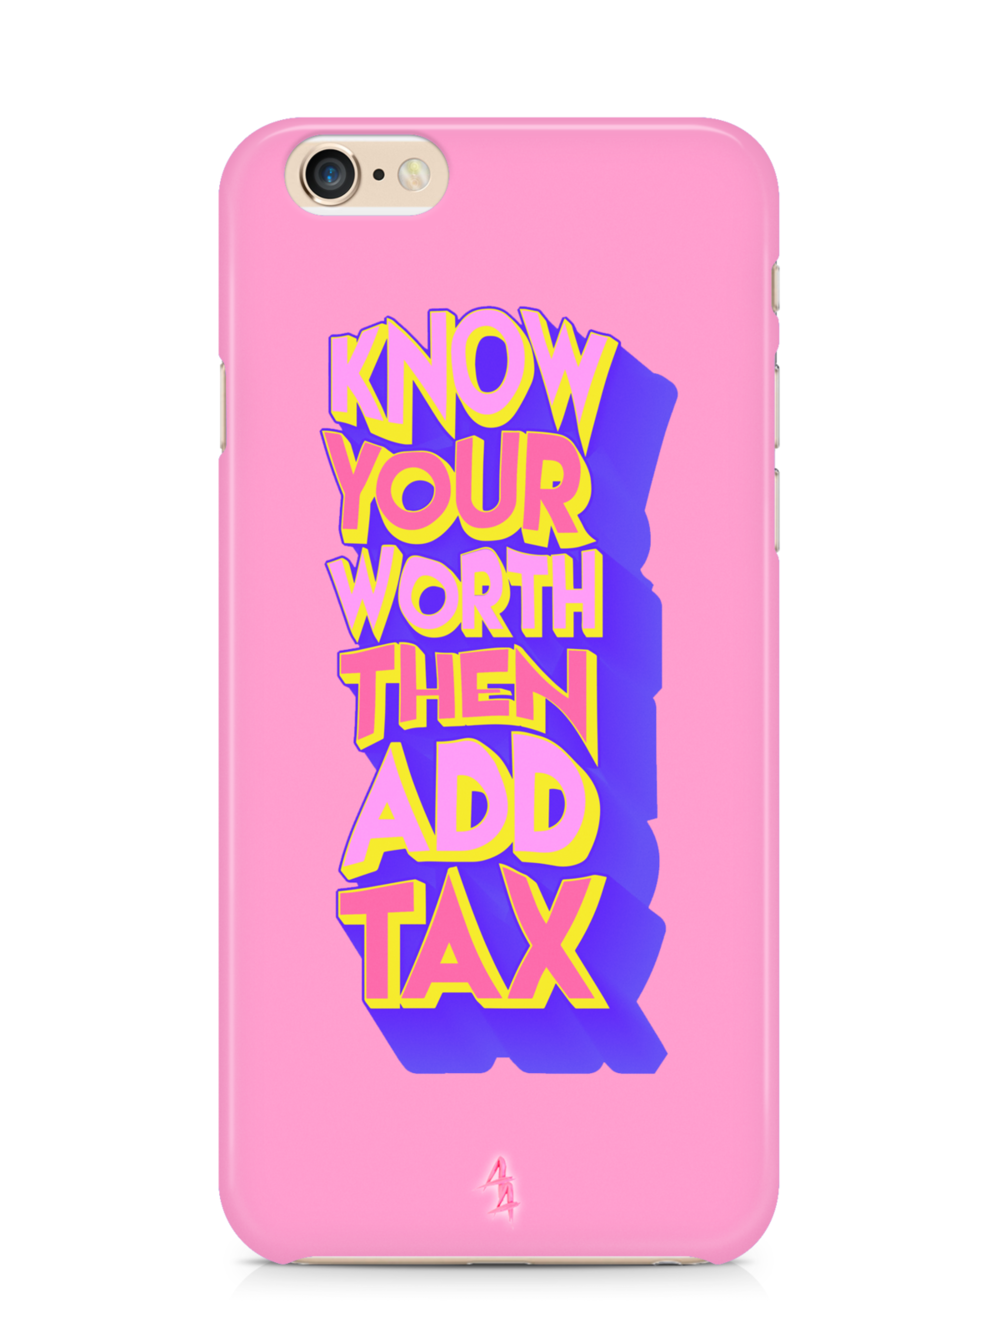 KNOW YOUR WORTH, THEN ADD TAX | £25.00 GBP